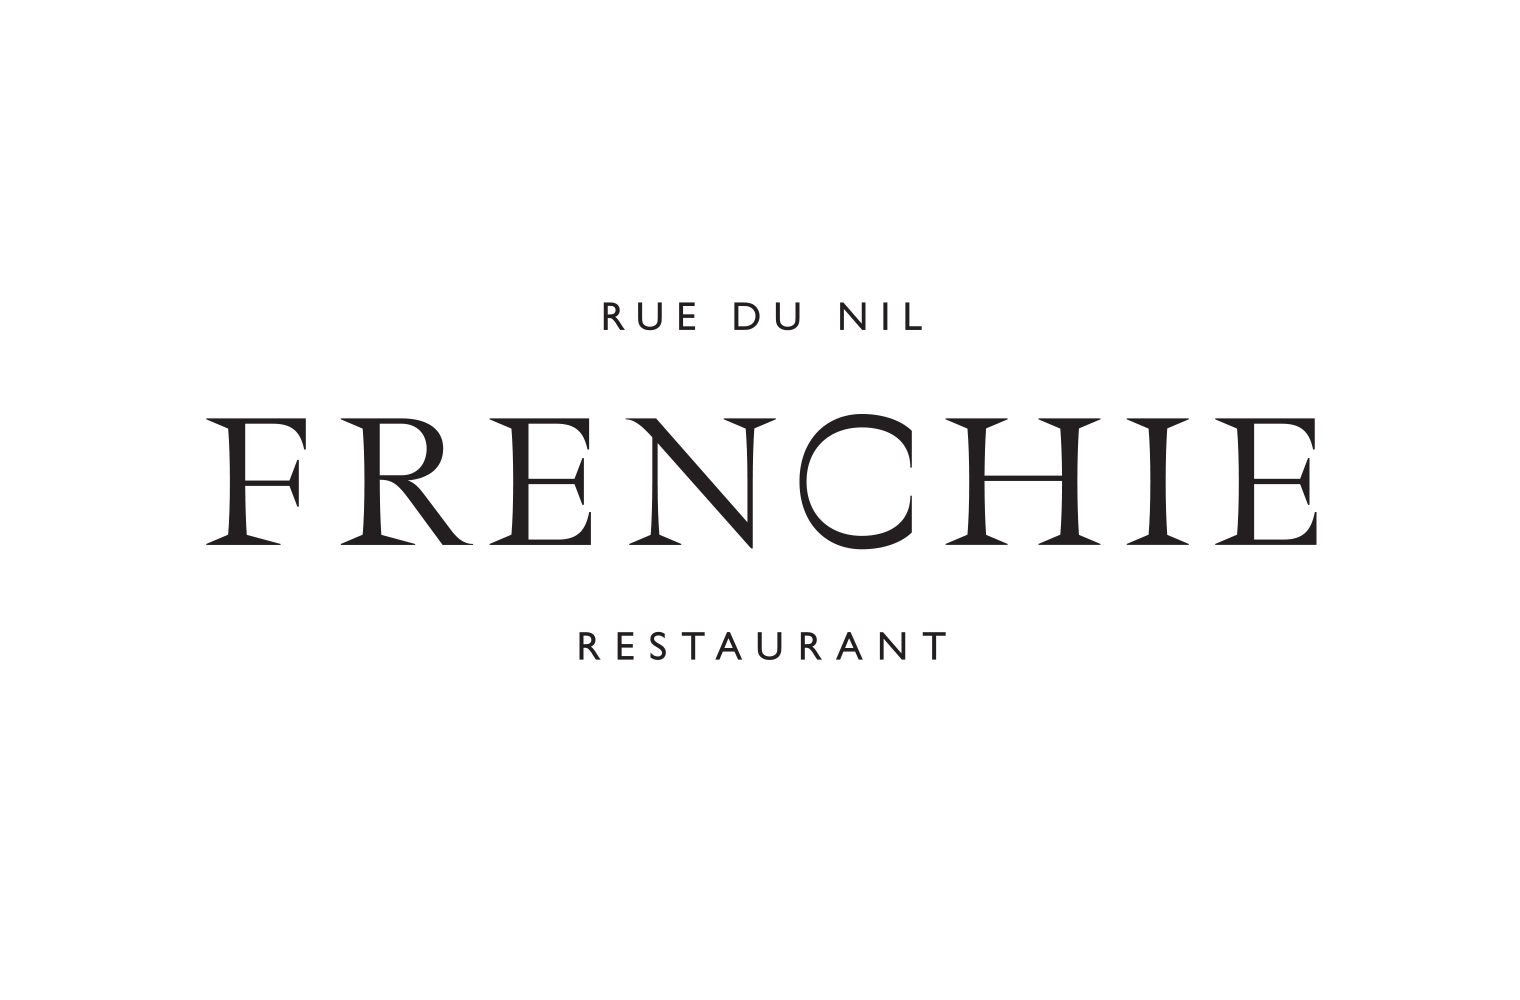 Frenchie Restaurant Fonts In Use